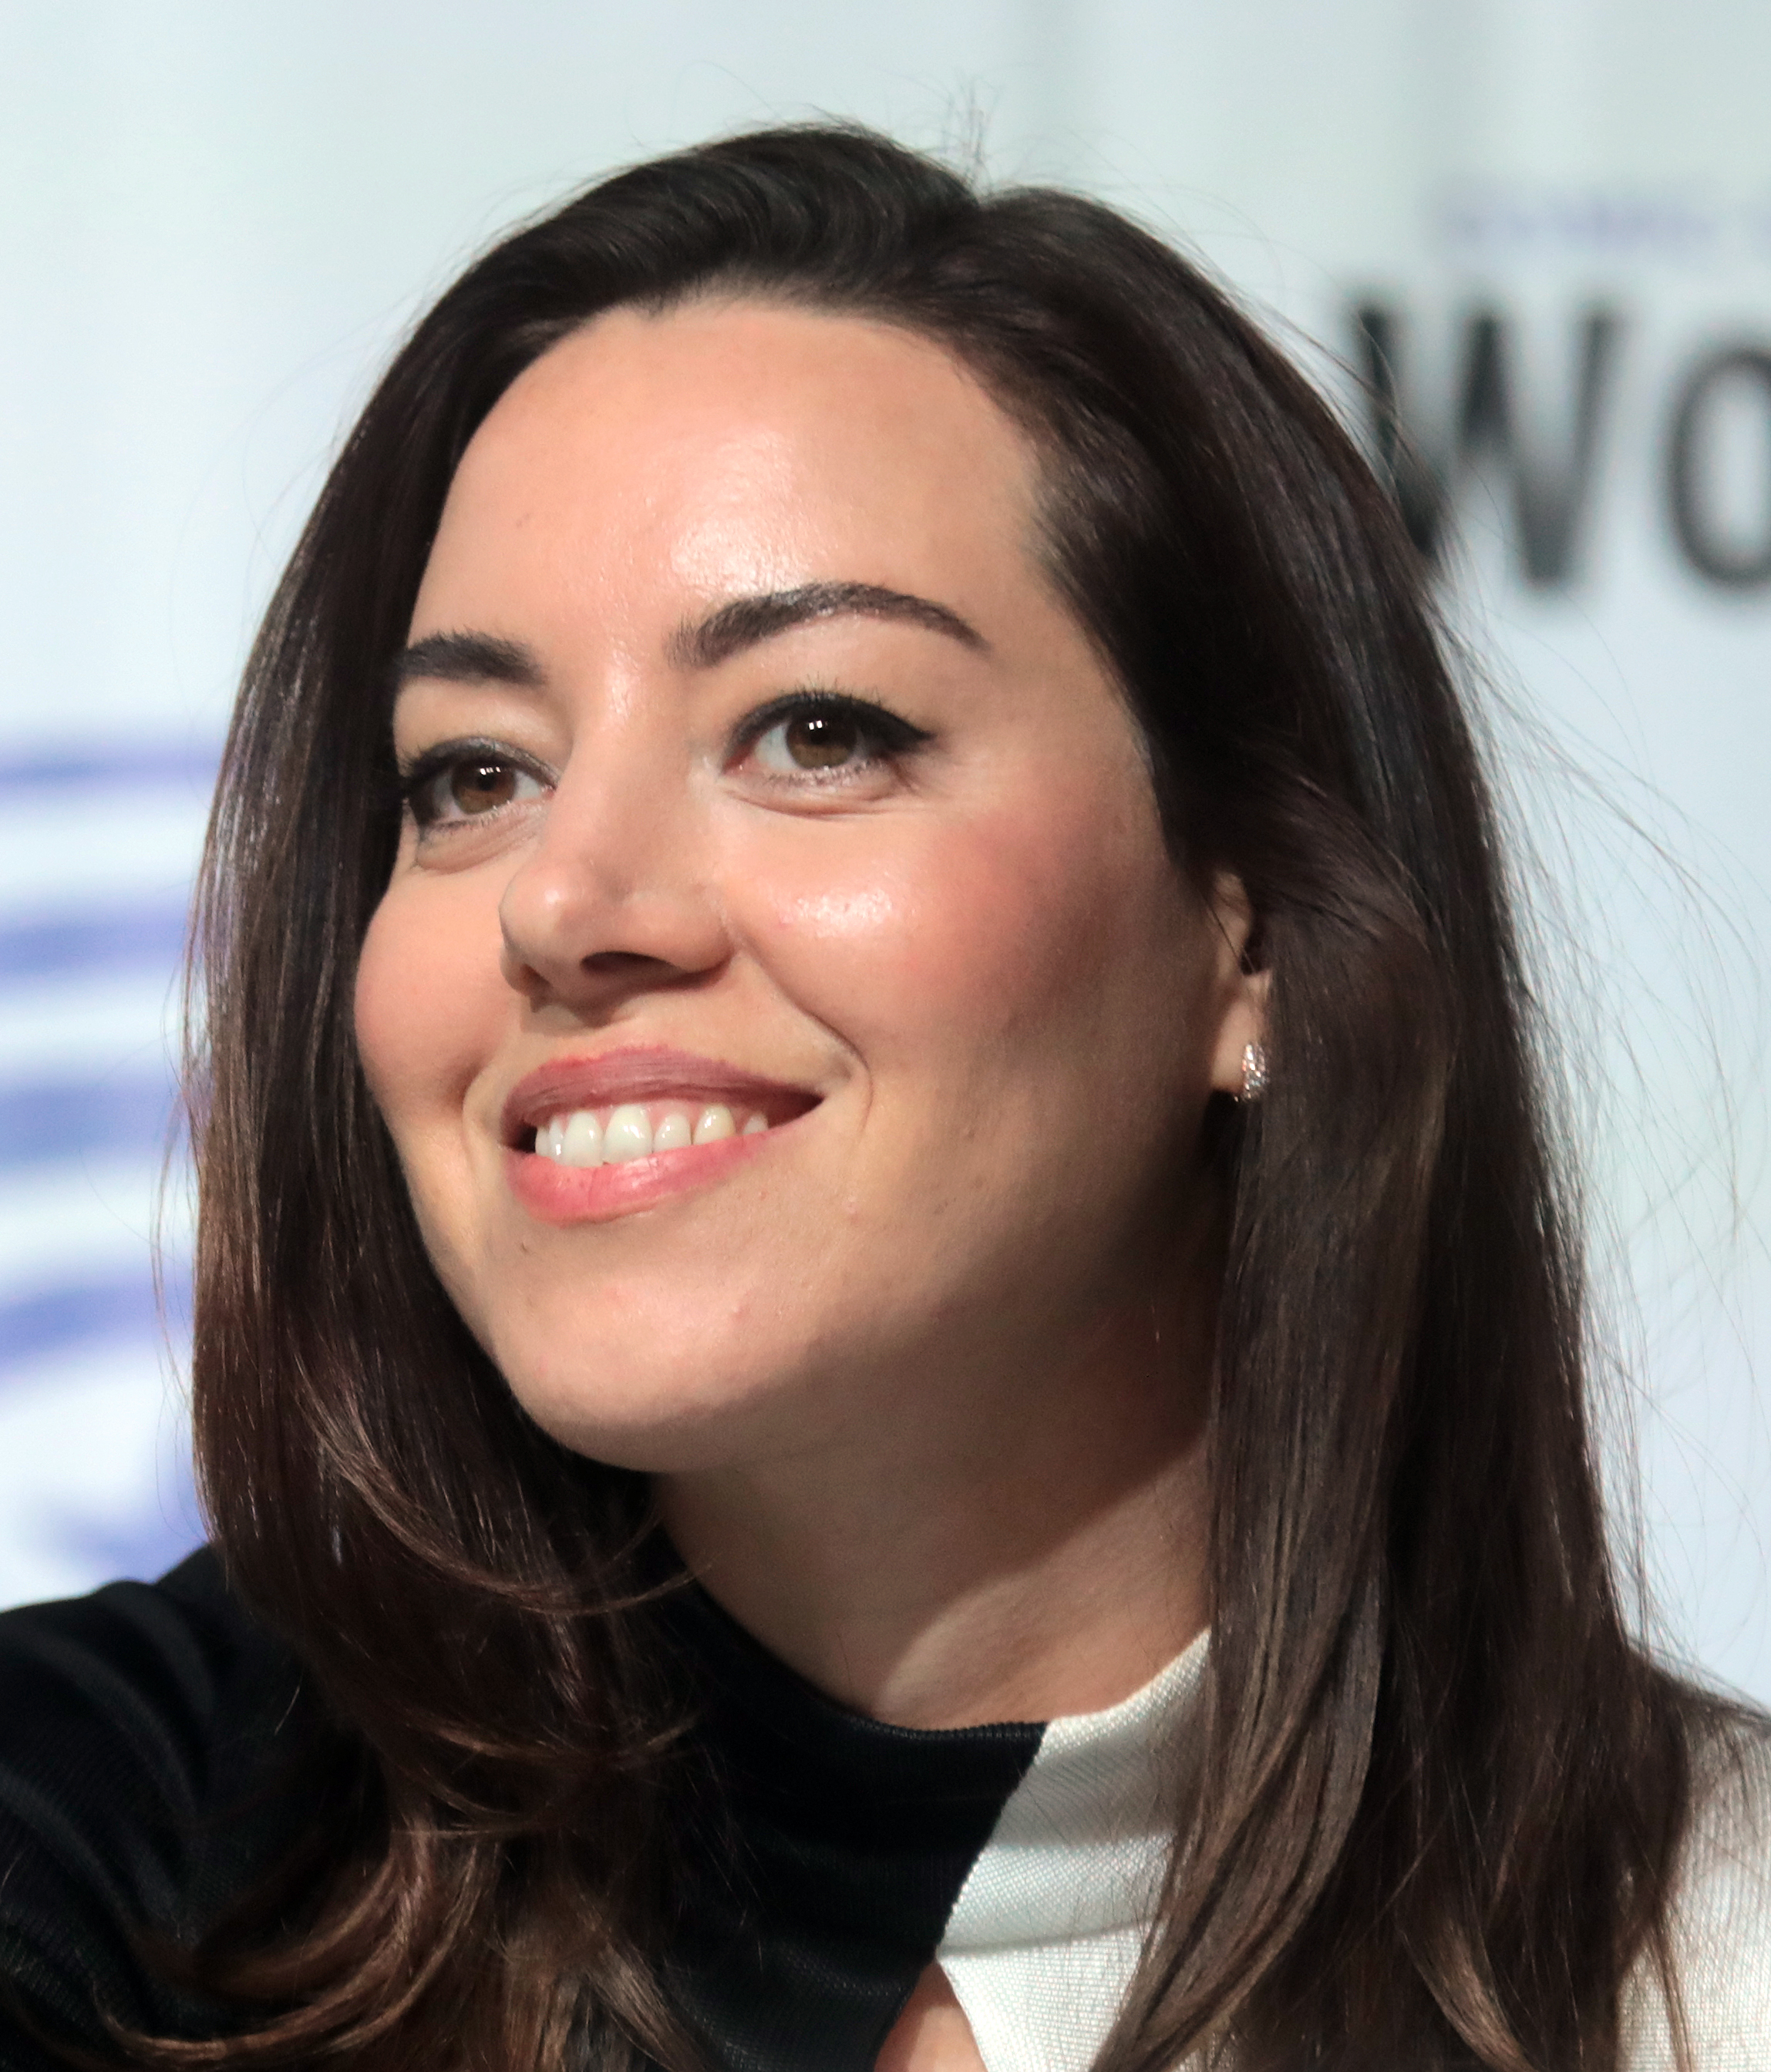 The 36-year old daughter of father (?) and mother(?) Aubrey Plaza in 2020 photo. Aubrey Plaza earned a million dollar salary - leaving the net worth at 3 million in 2020